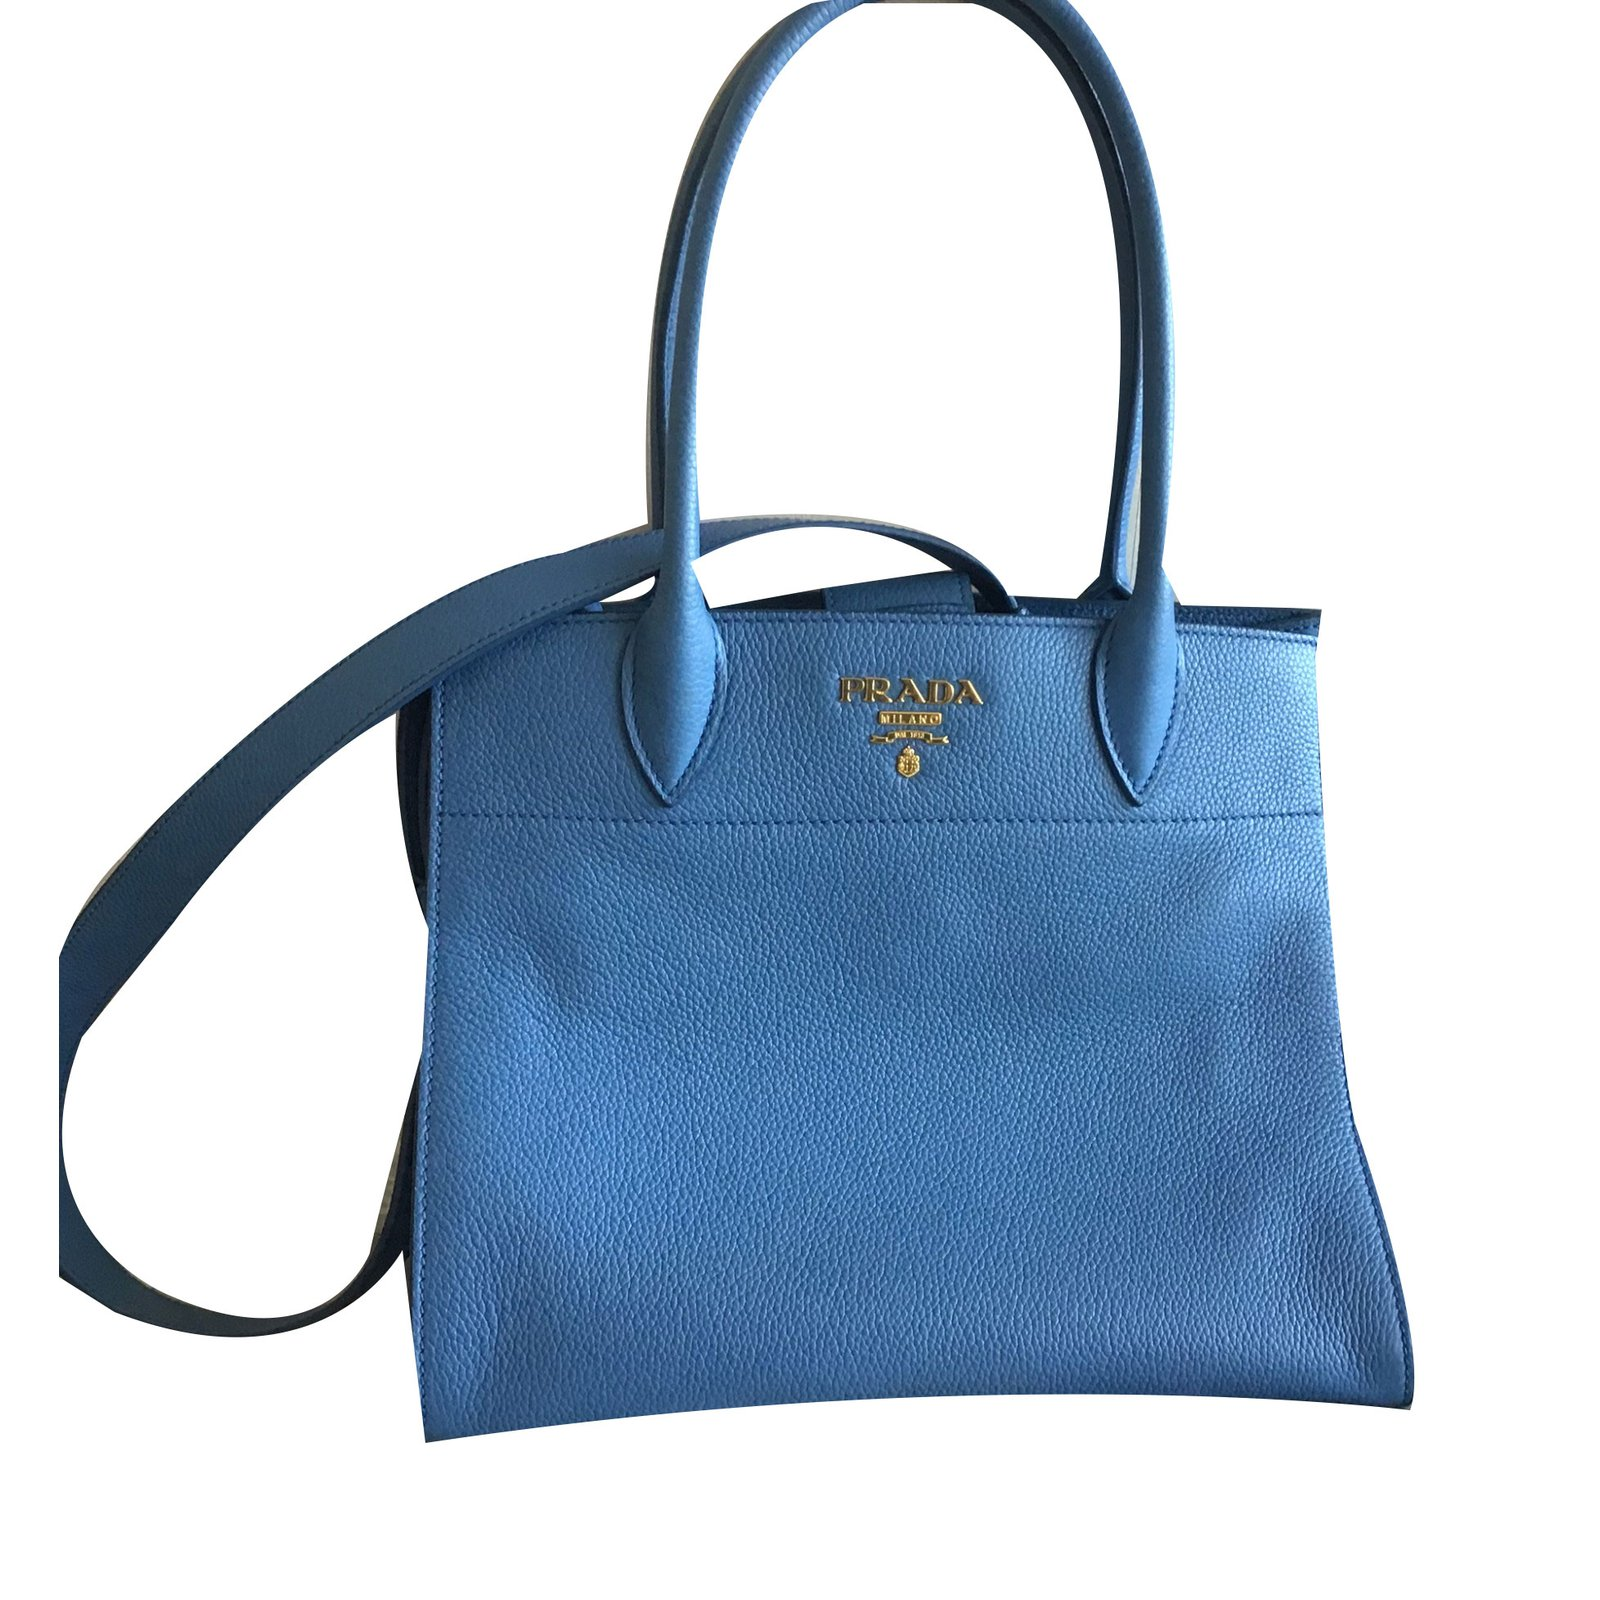 784079220b88 ... get prada handbags handbags leather blue ref.80898 ffbd5 322ee